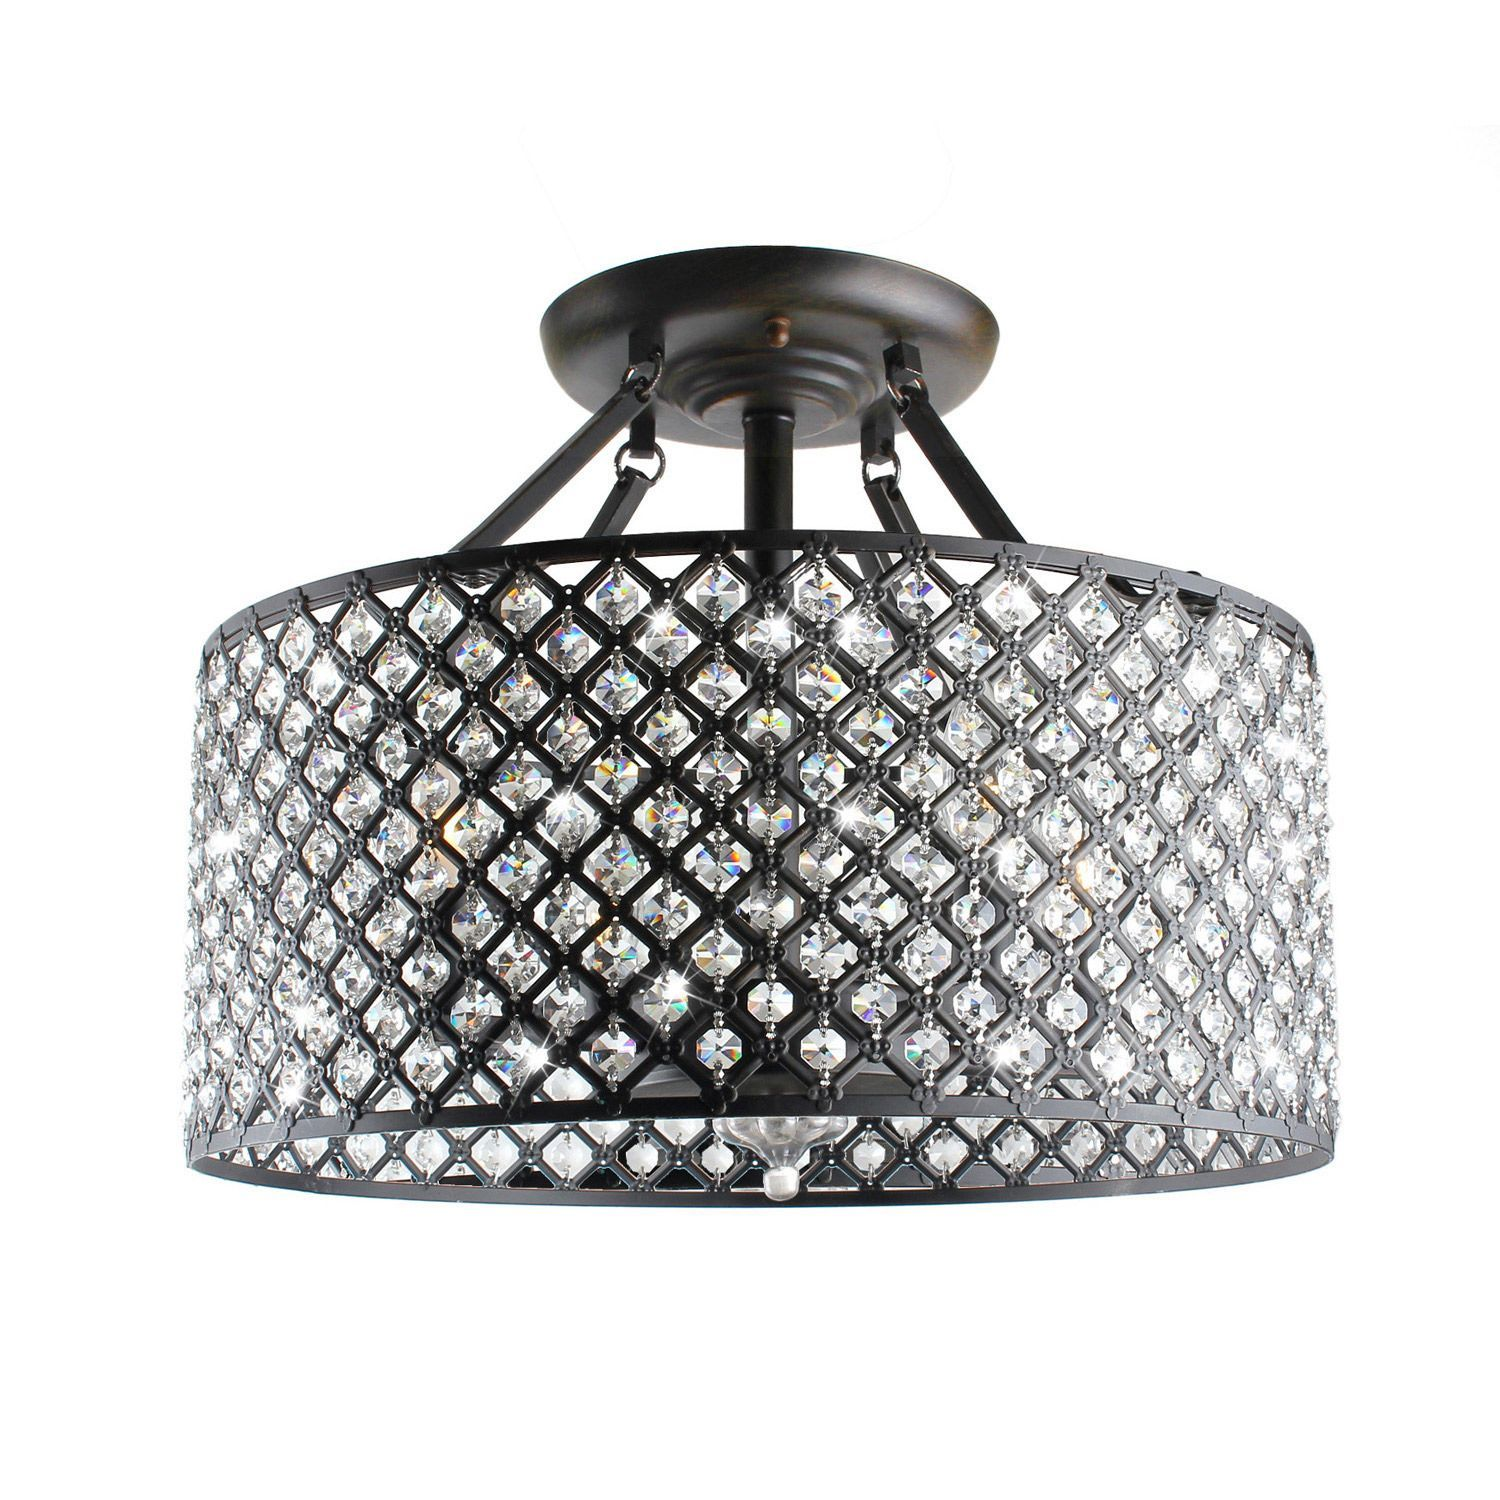 This chic round crystal chandelier will add a glitzy touch to your